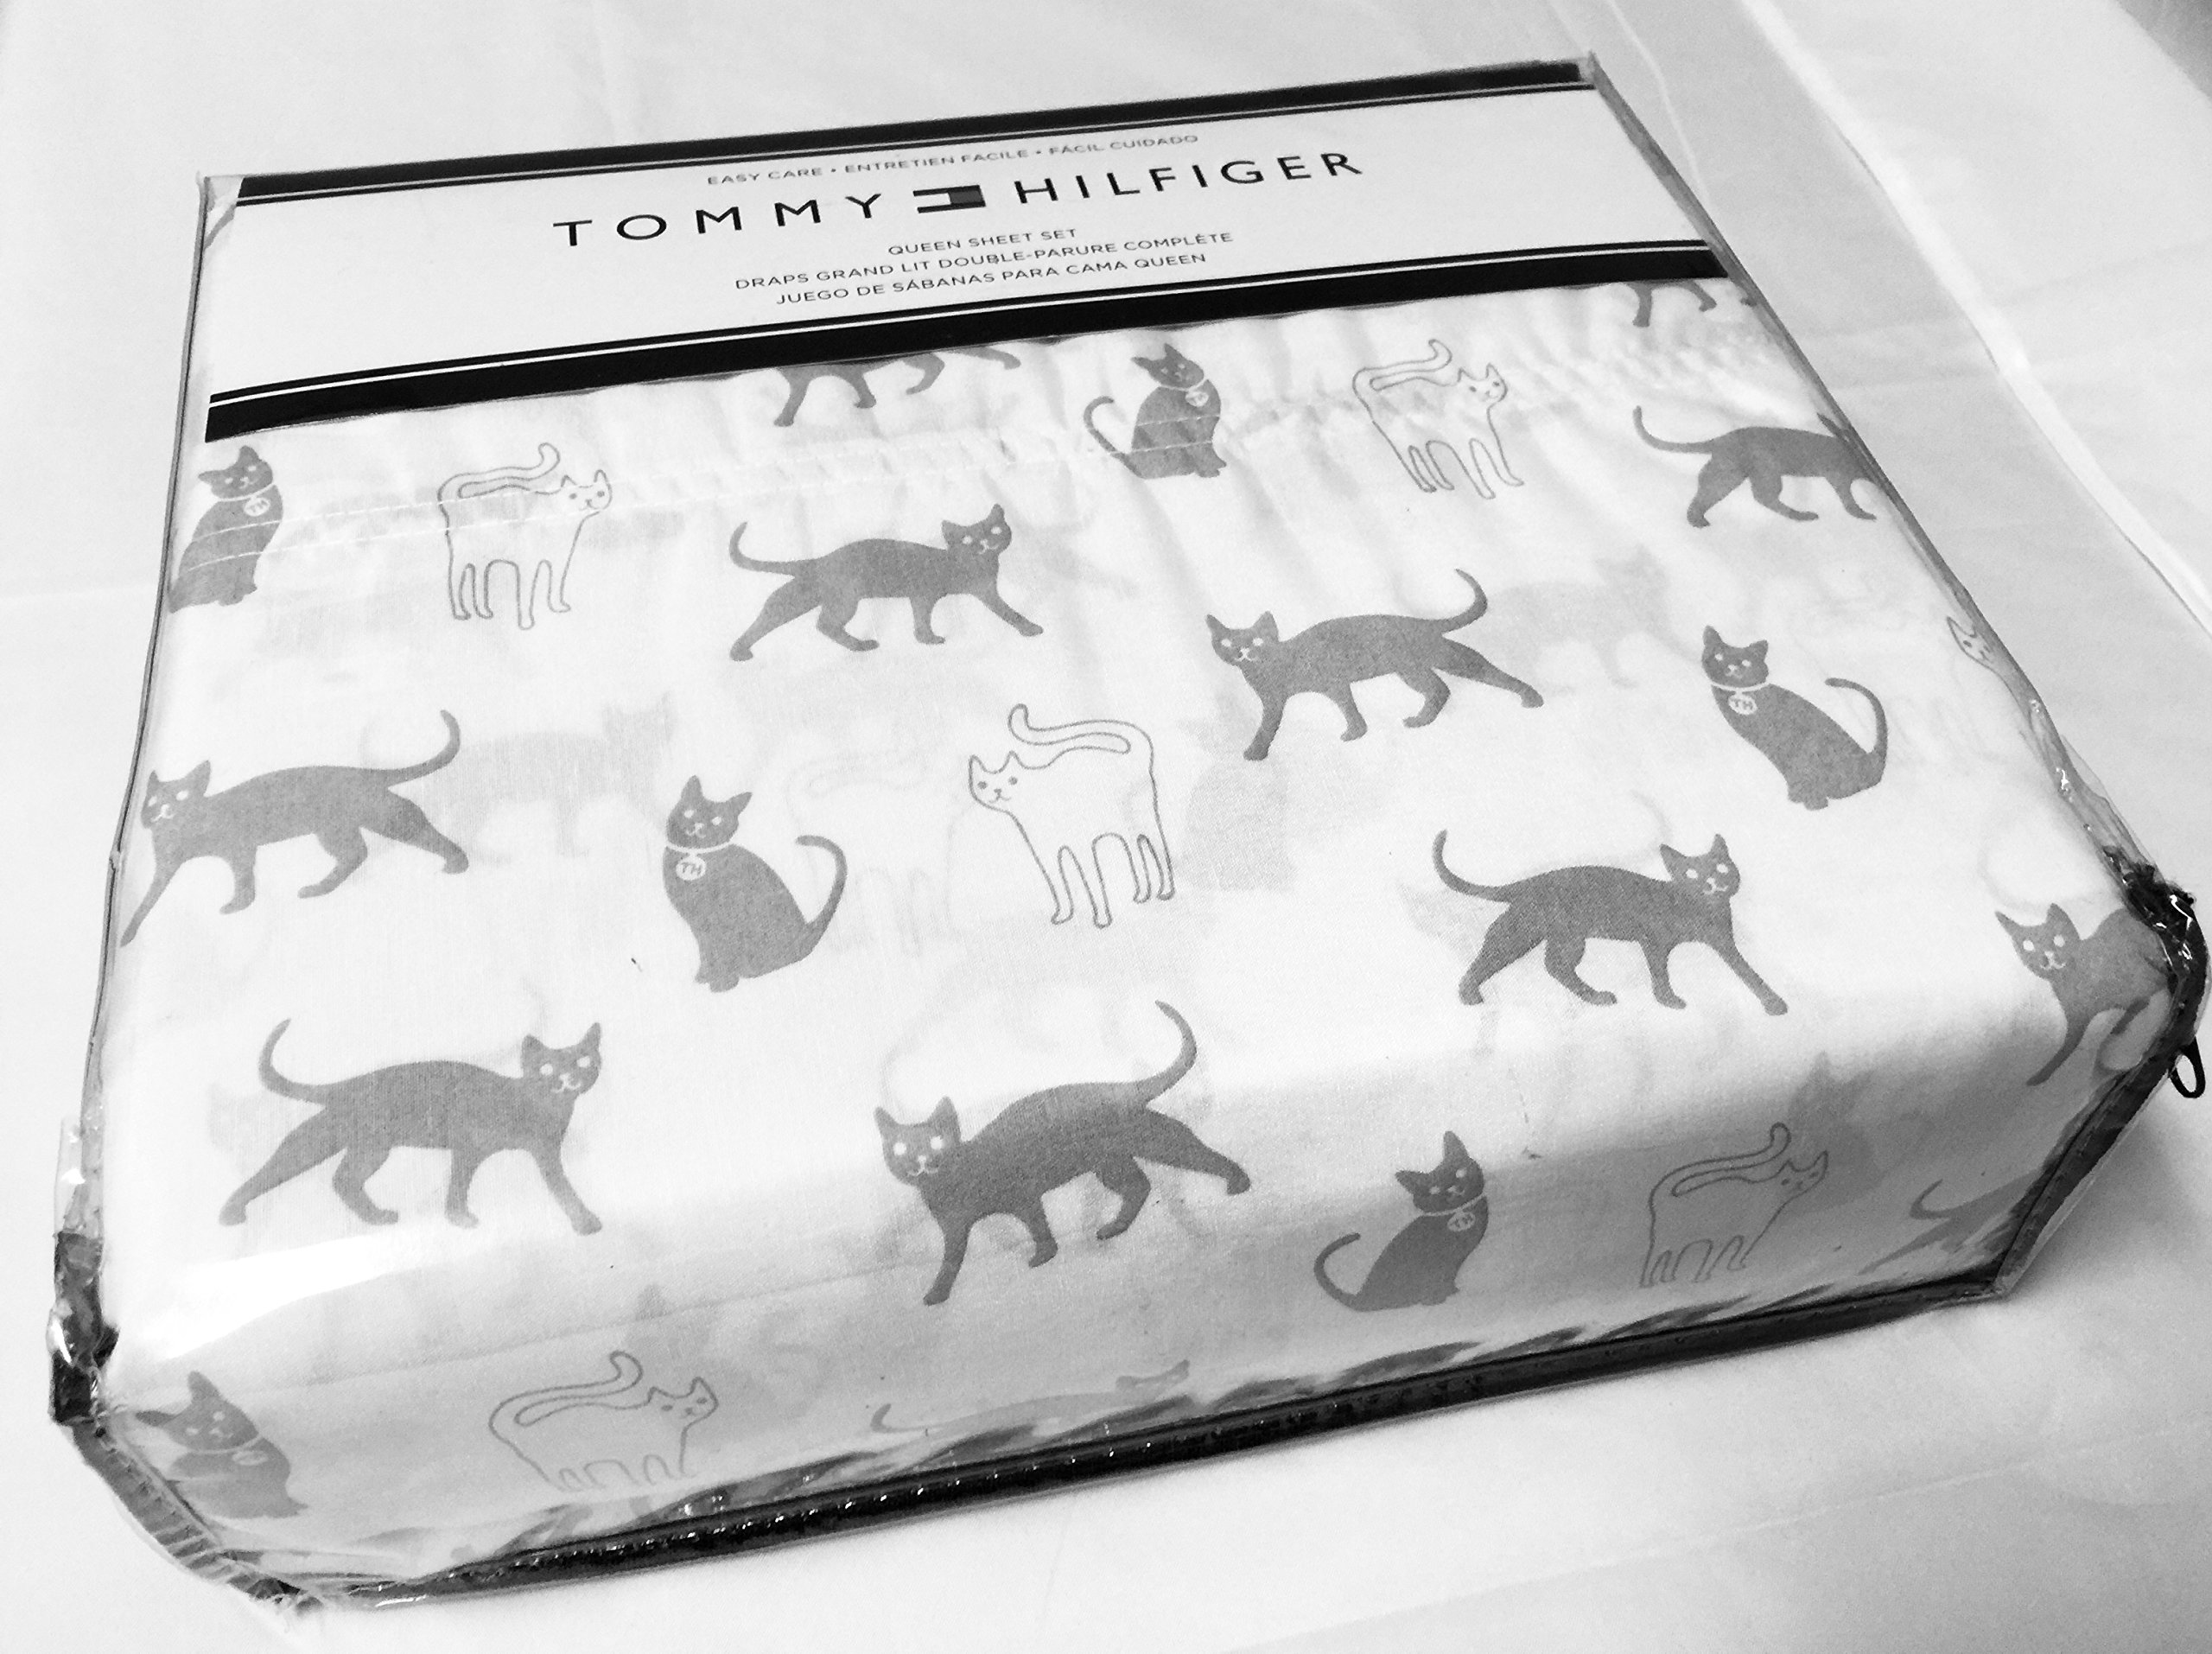 Tommy Hilfiger Queen Sheet Set Cats Cotton Flannel 4 Pc Gray ~ White Bedding Animal Print